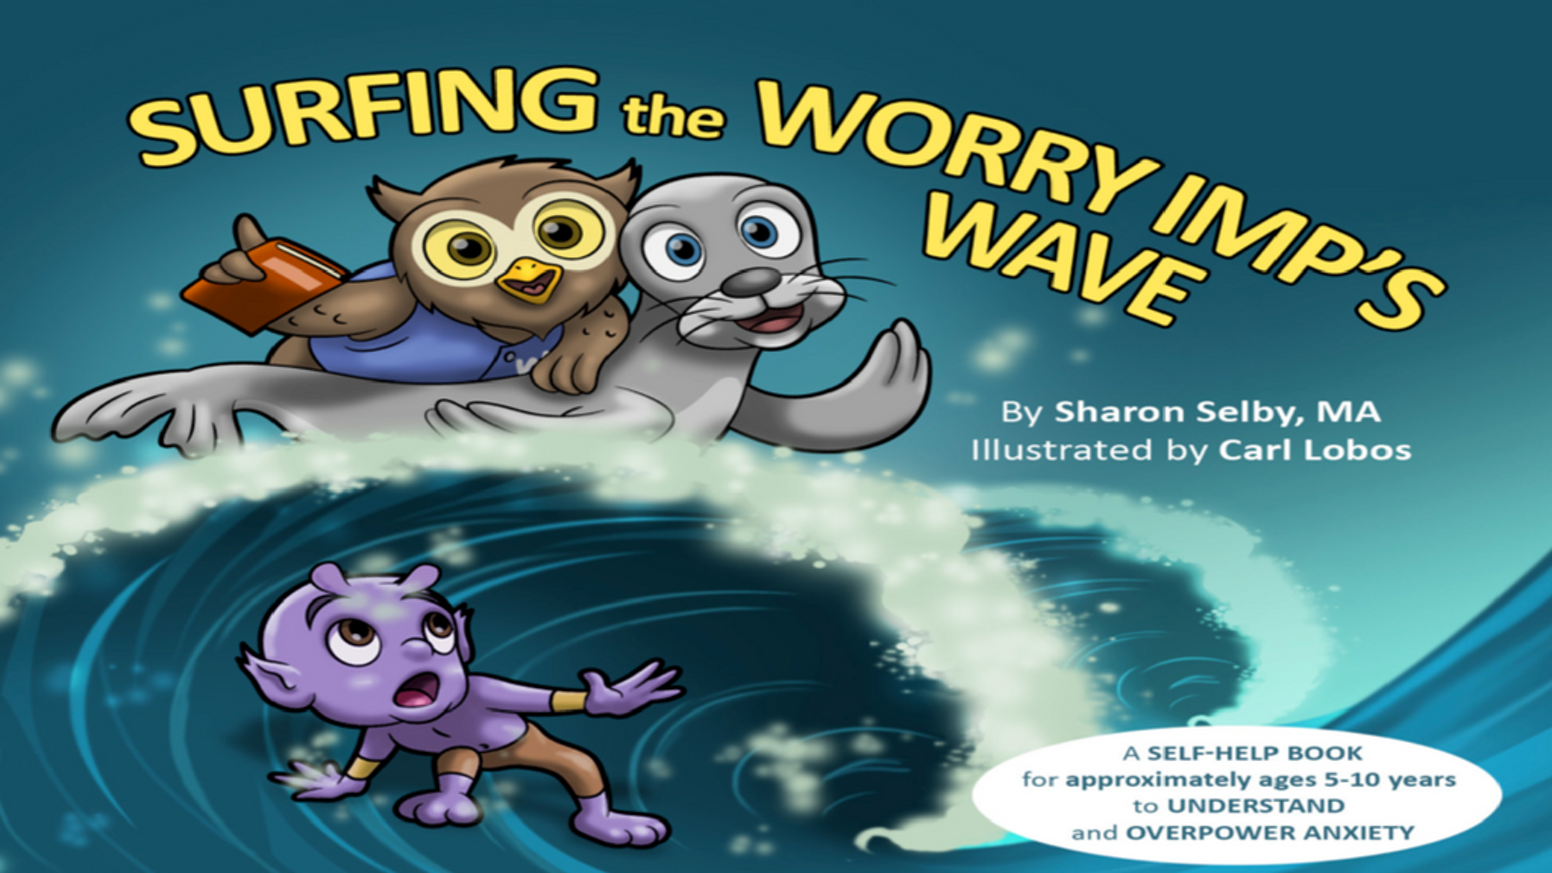 This engaging and in-depth children's book teaches all about anxiety and how to overpower it using ten Wiley Owl wise-thinking tools. To order now that the Kickstarter Campaign is over, please visit my website at www.SharonSelby.com